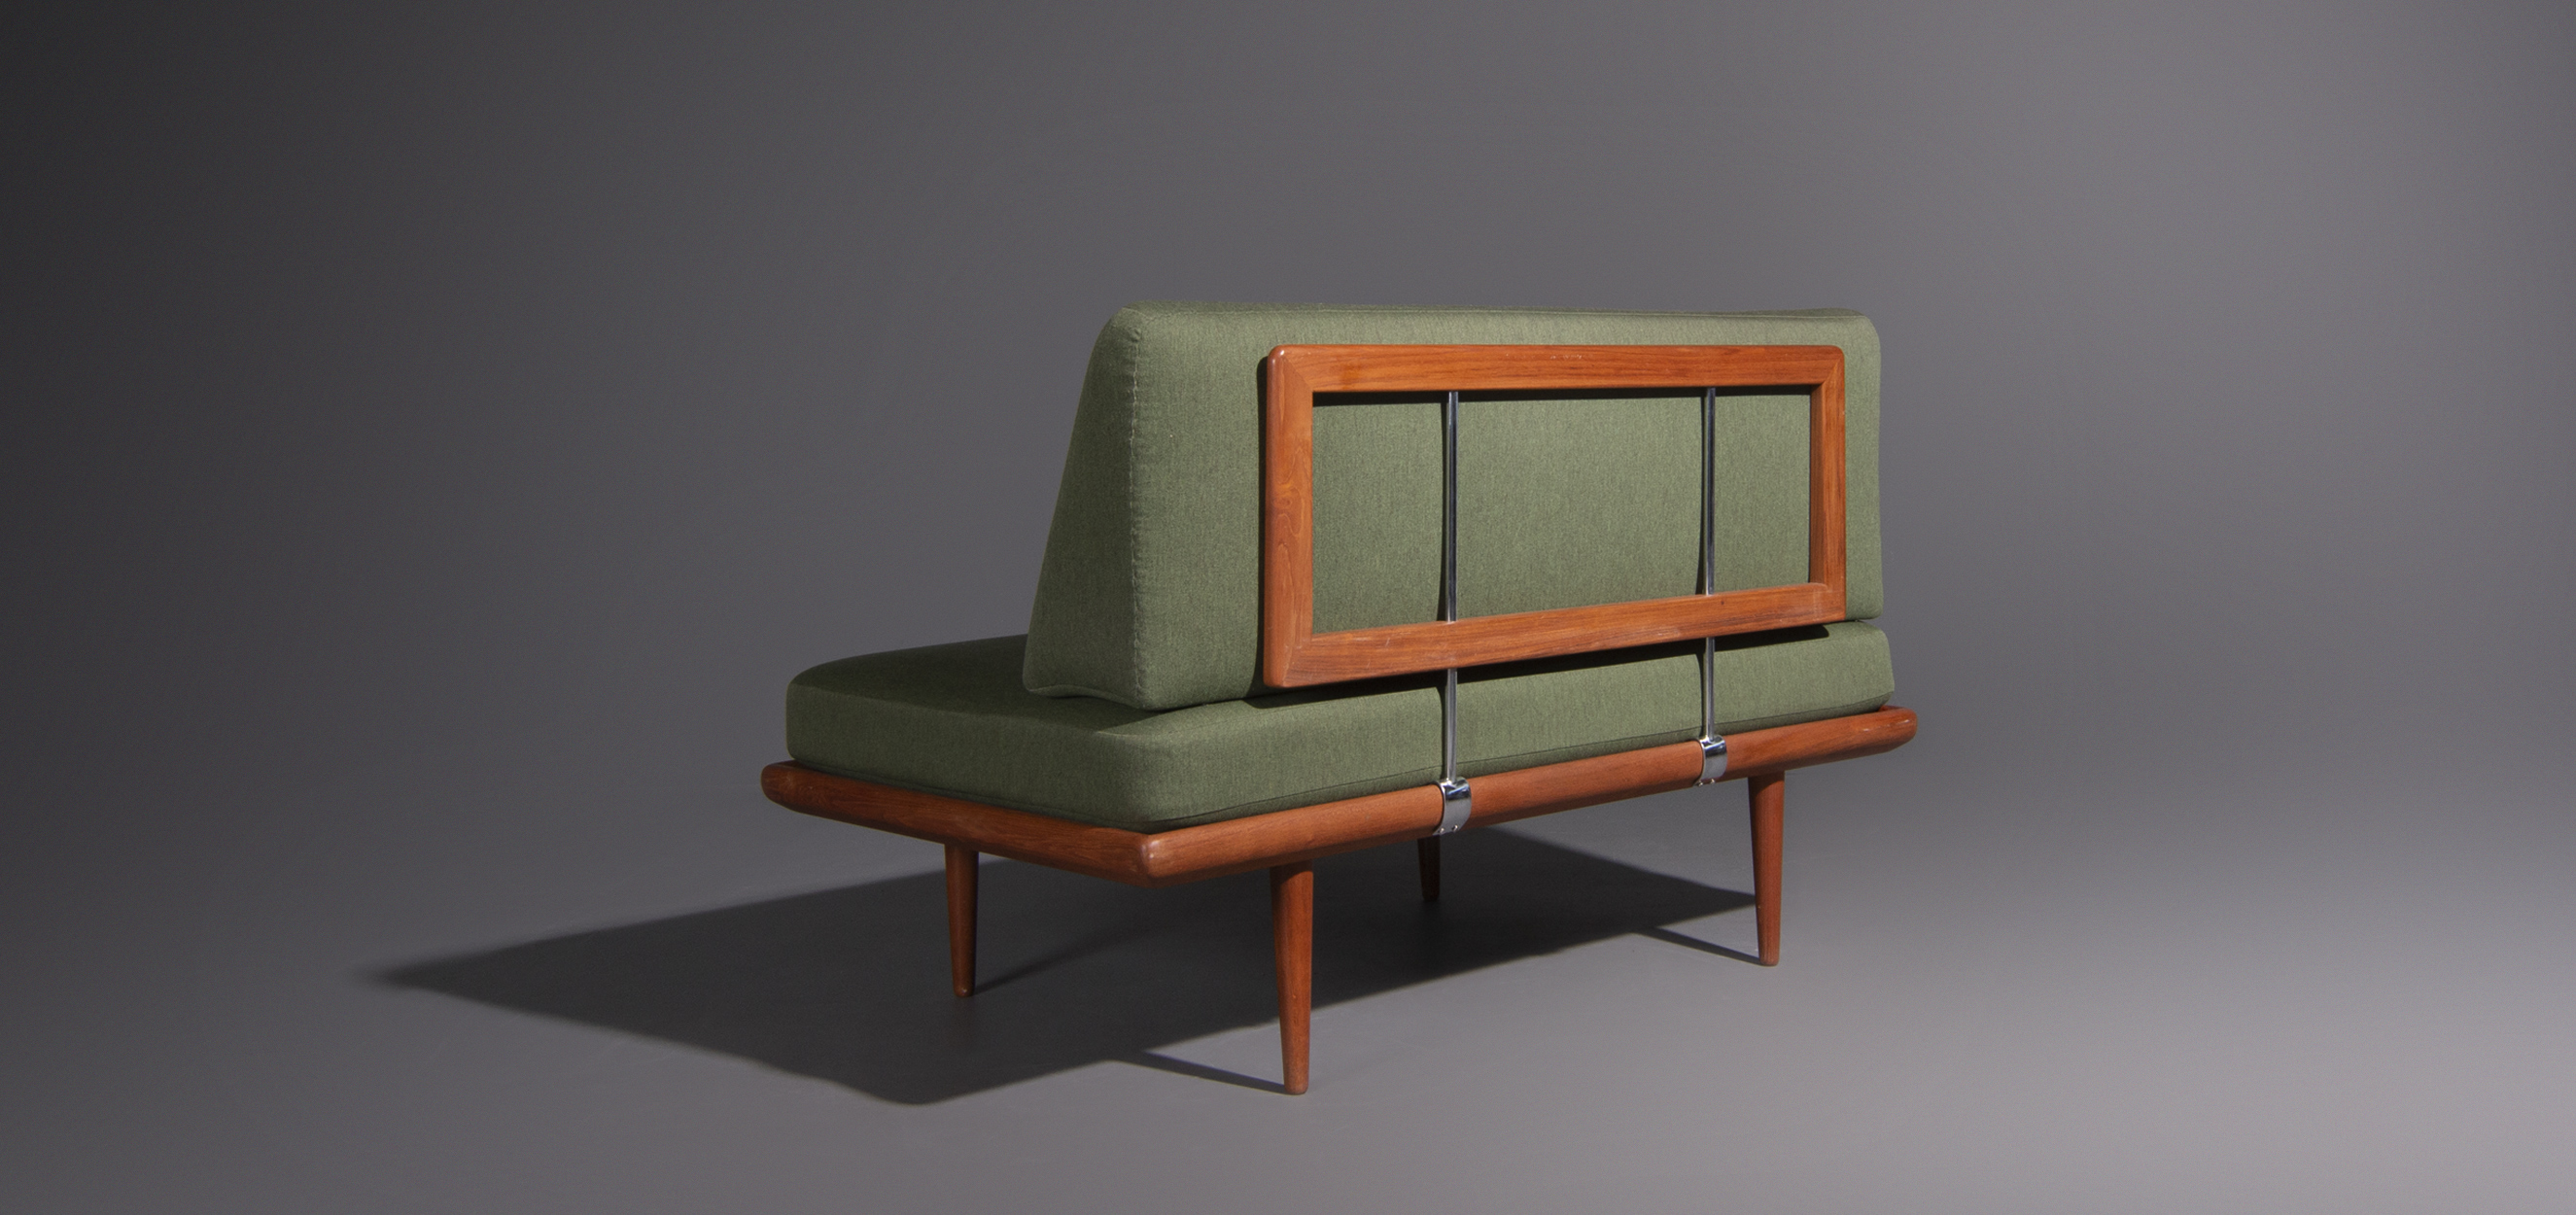 2 Zits Design Bank.Peter Hvidt 2 Seater Sofa By France And Son In The 60s Mariekke